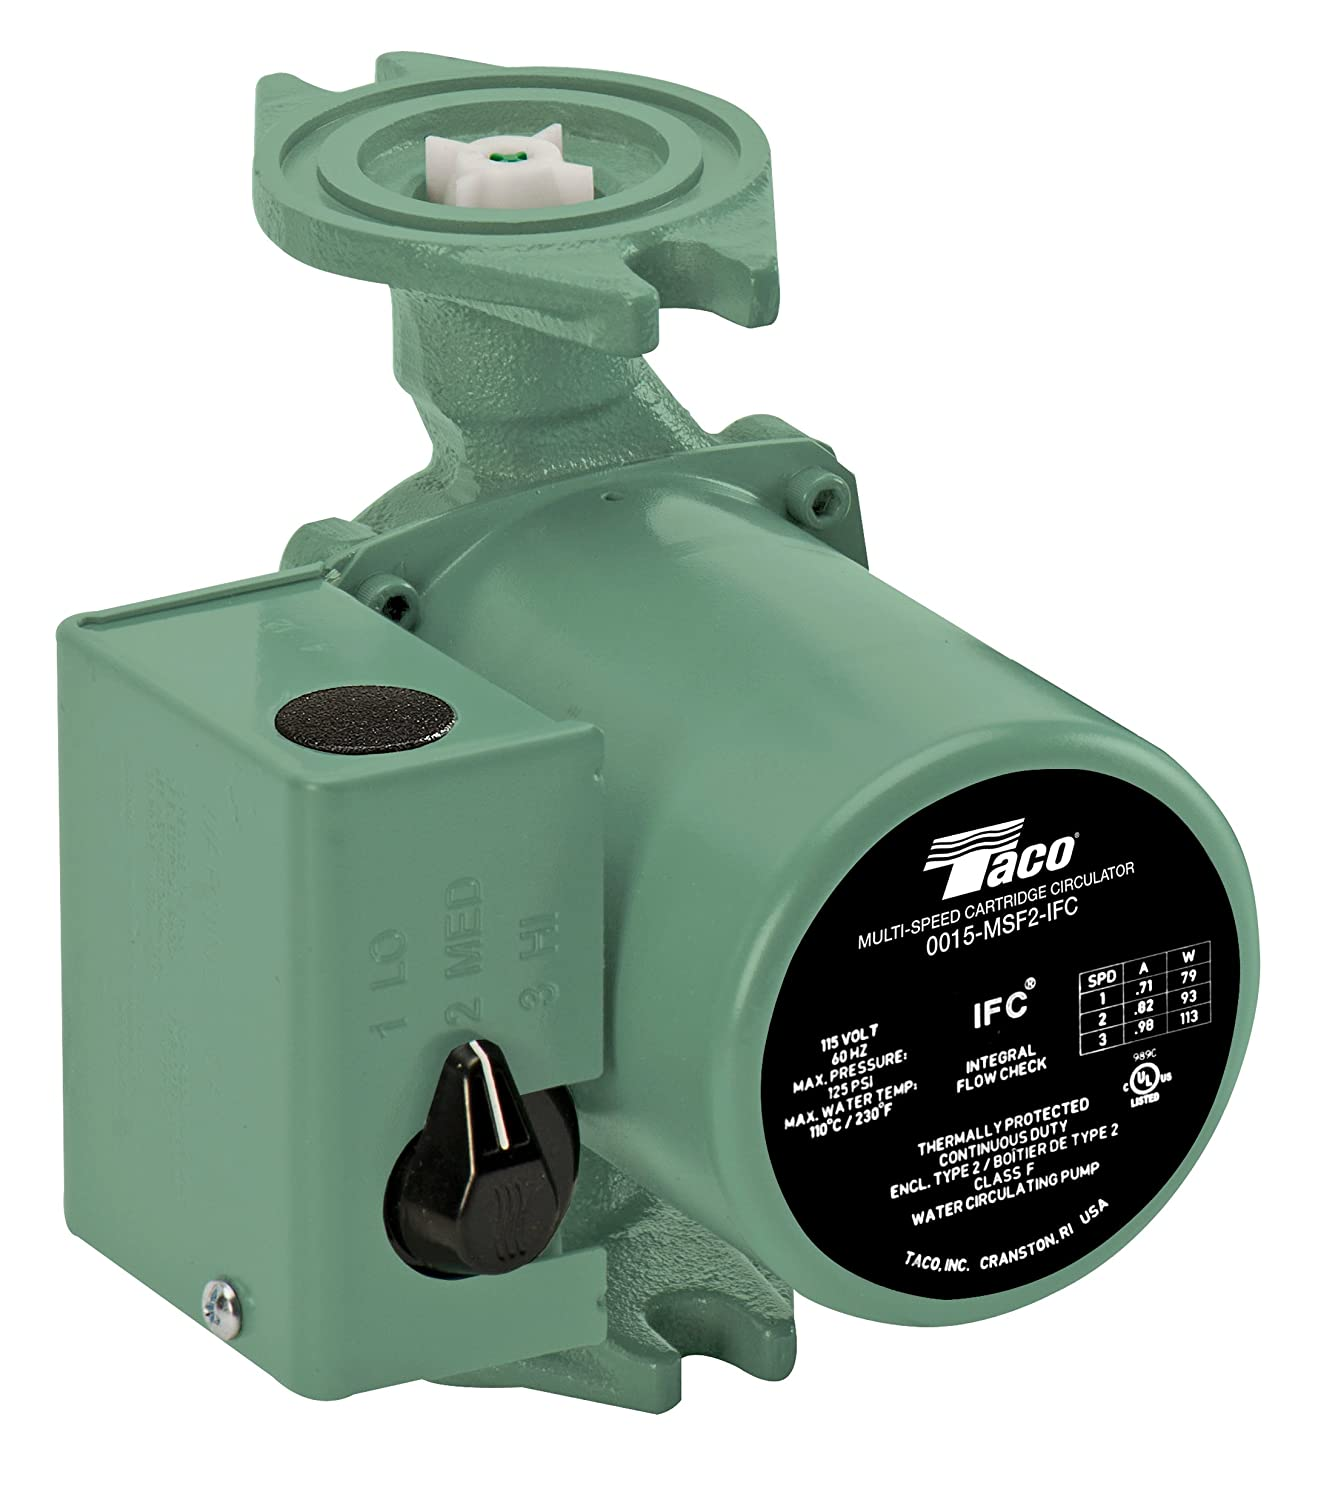 Taco 0015-MSF2-IFC 3-Speed Circulator, Cast Iron: Portable Power Water Pumps:  Amazon.com: Industrial & Scientific